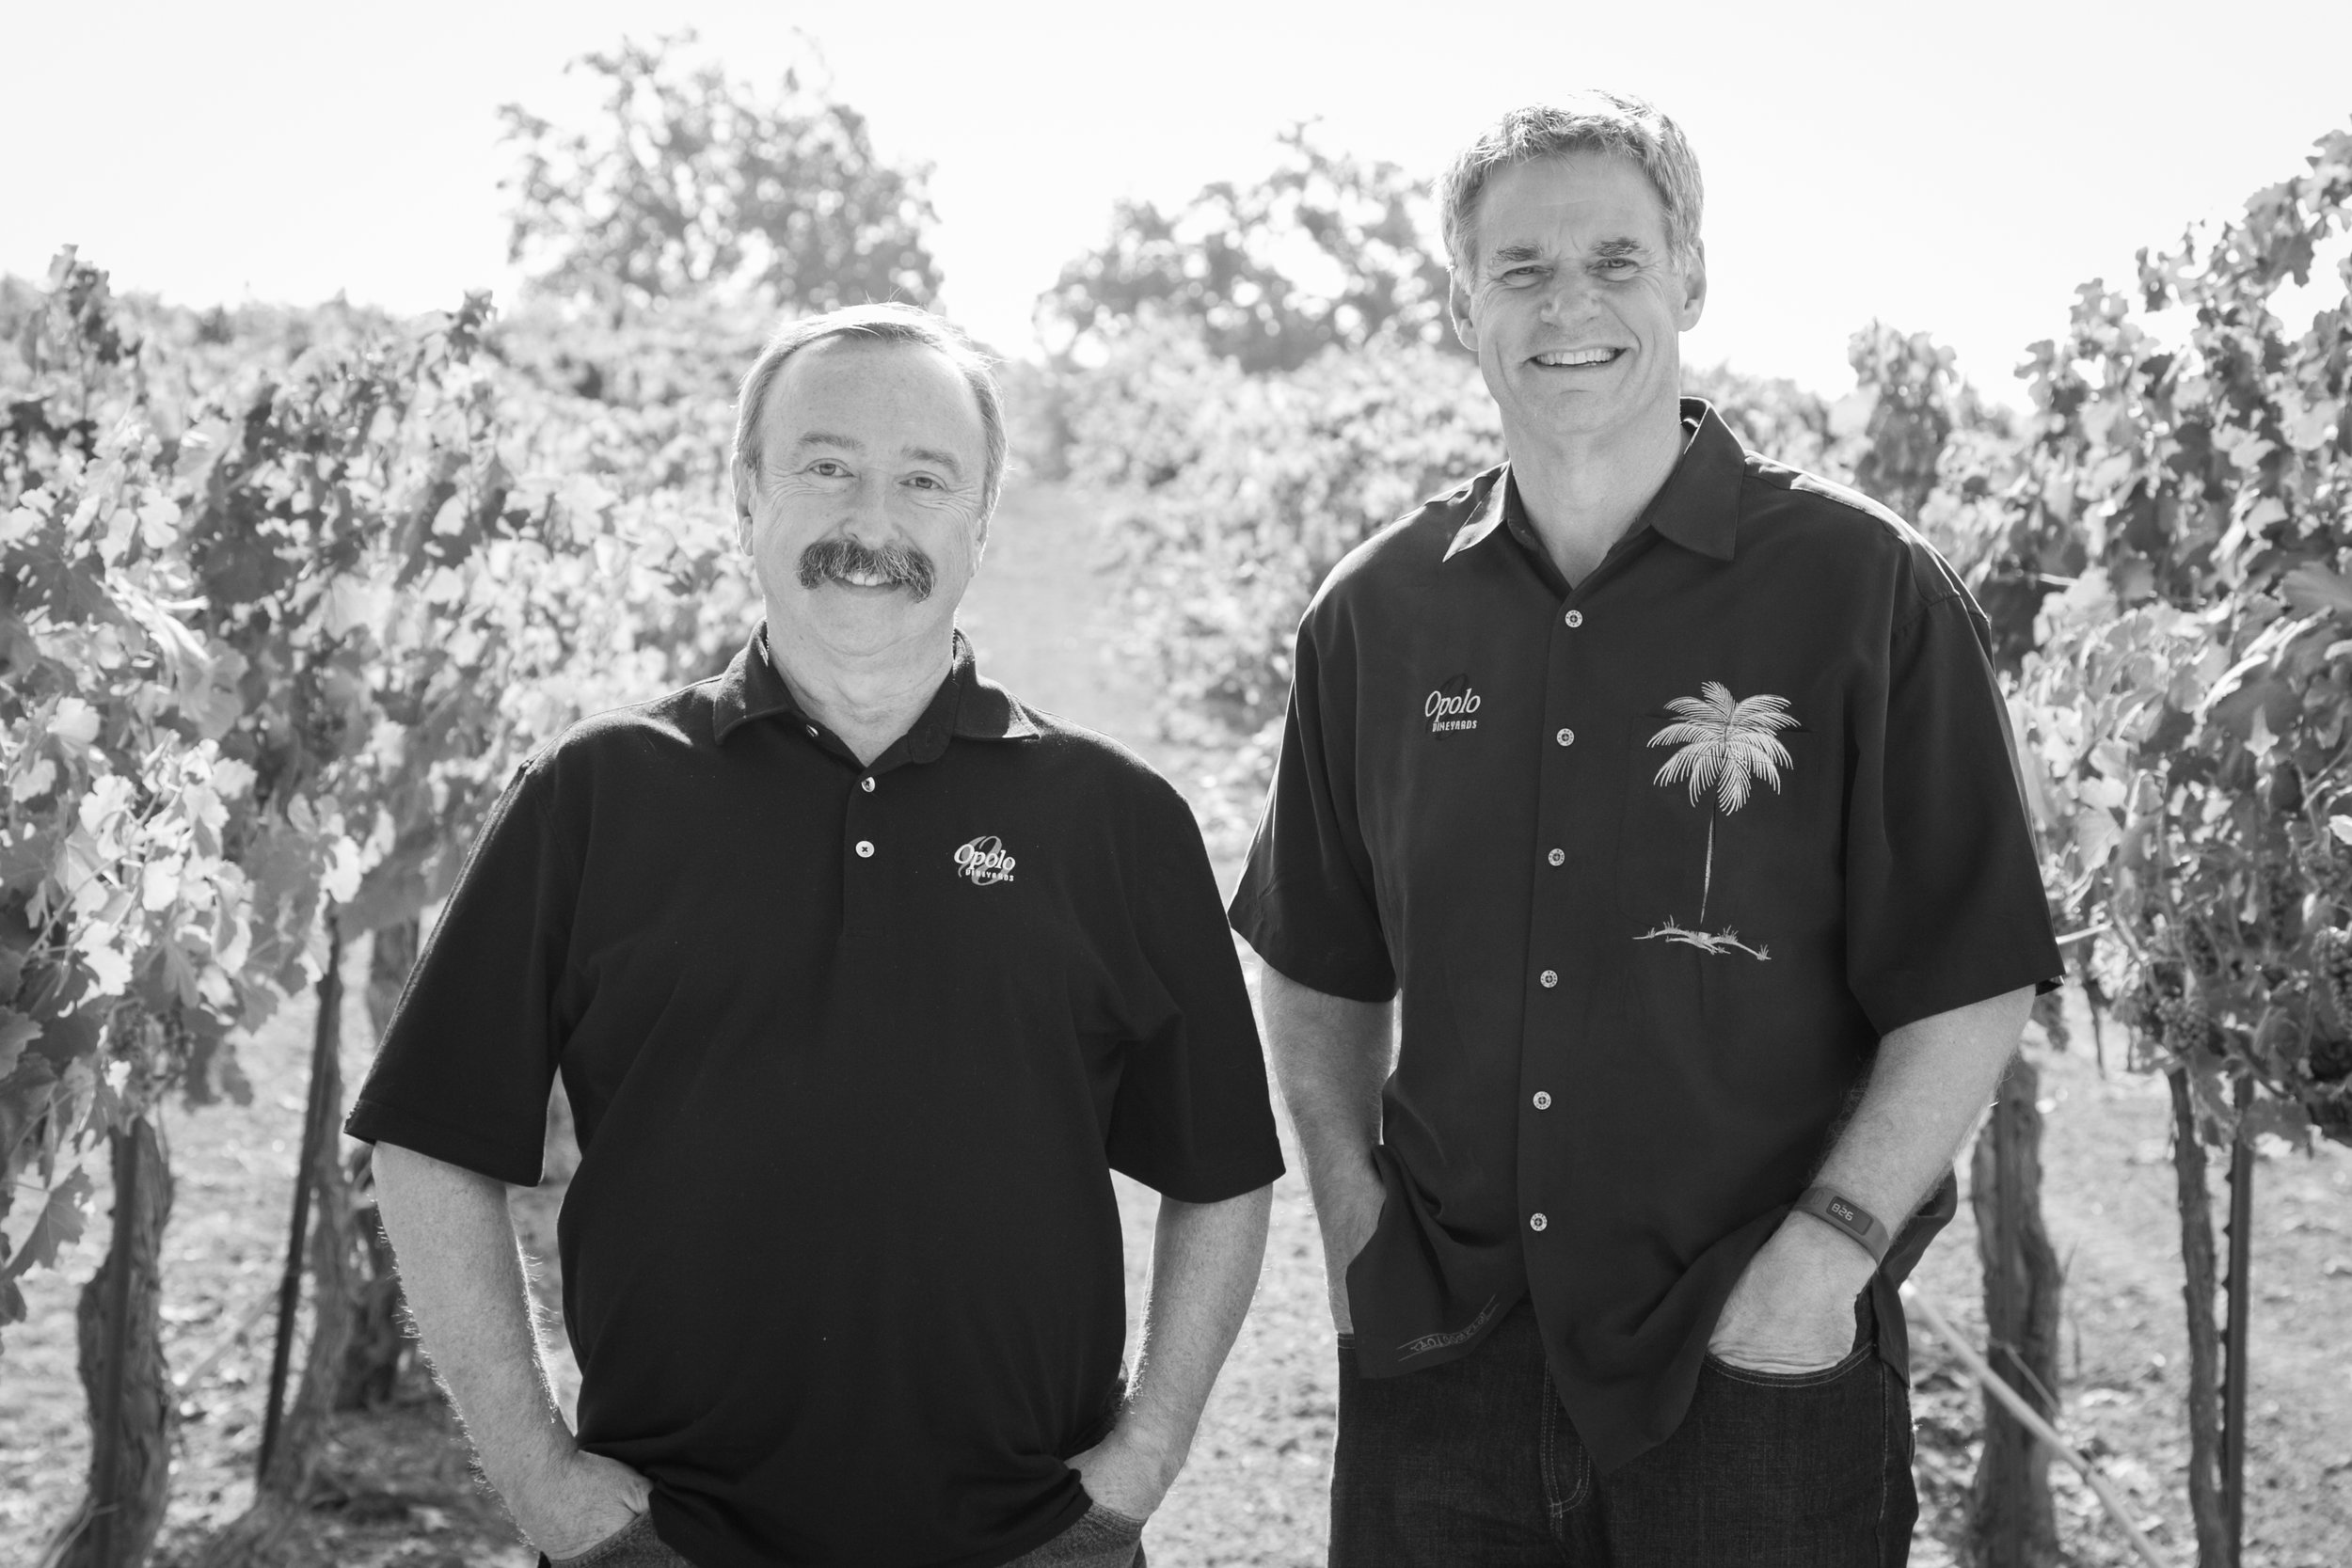 Rick Quinn & Dave Nichols    Proprietors   Co-owners of Opolo Vineyards, Rick and Dave's interest in distilling peaked as an extension from years of wine making. That interest turned into the next facet for Opolo, the introduction of Willow Creek Distillery.